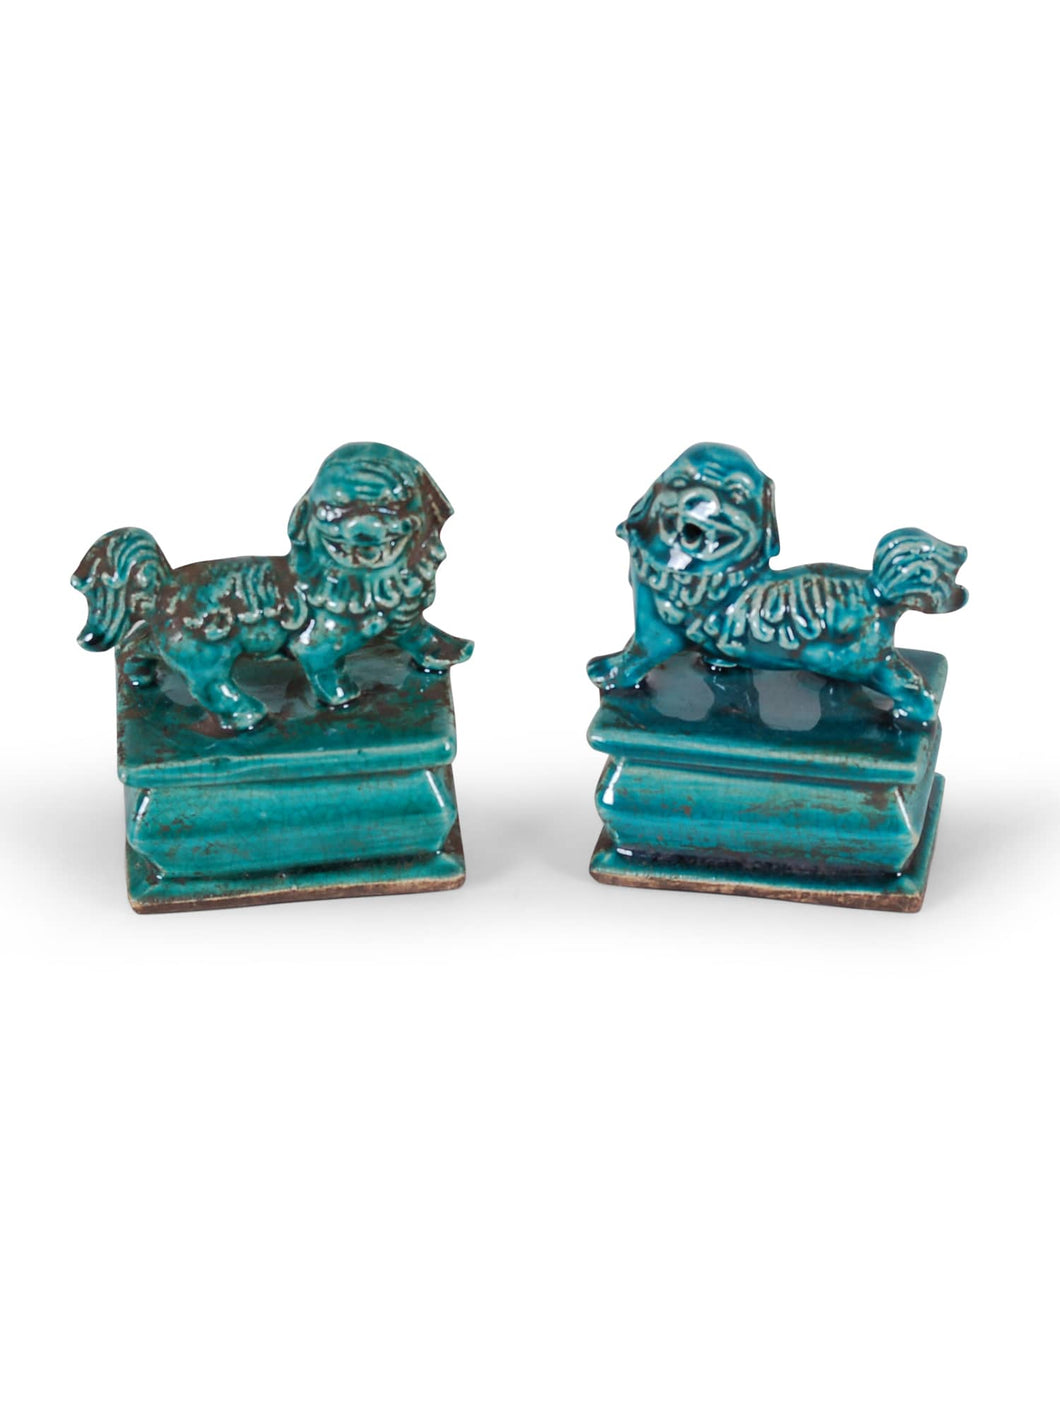 Phoenix Green Small Foo Dogs